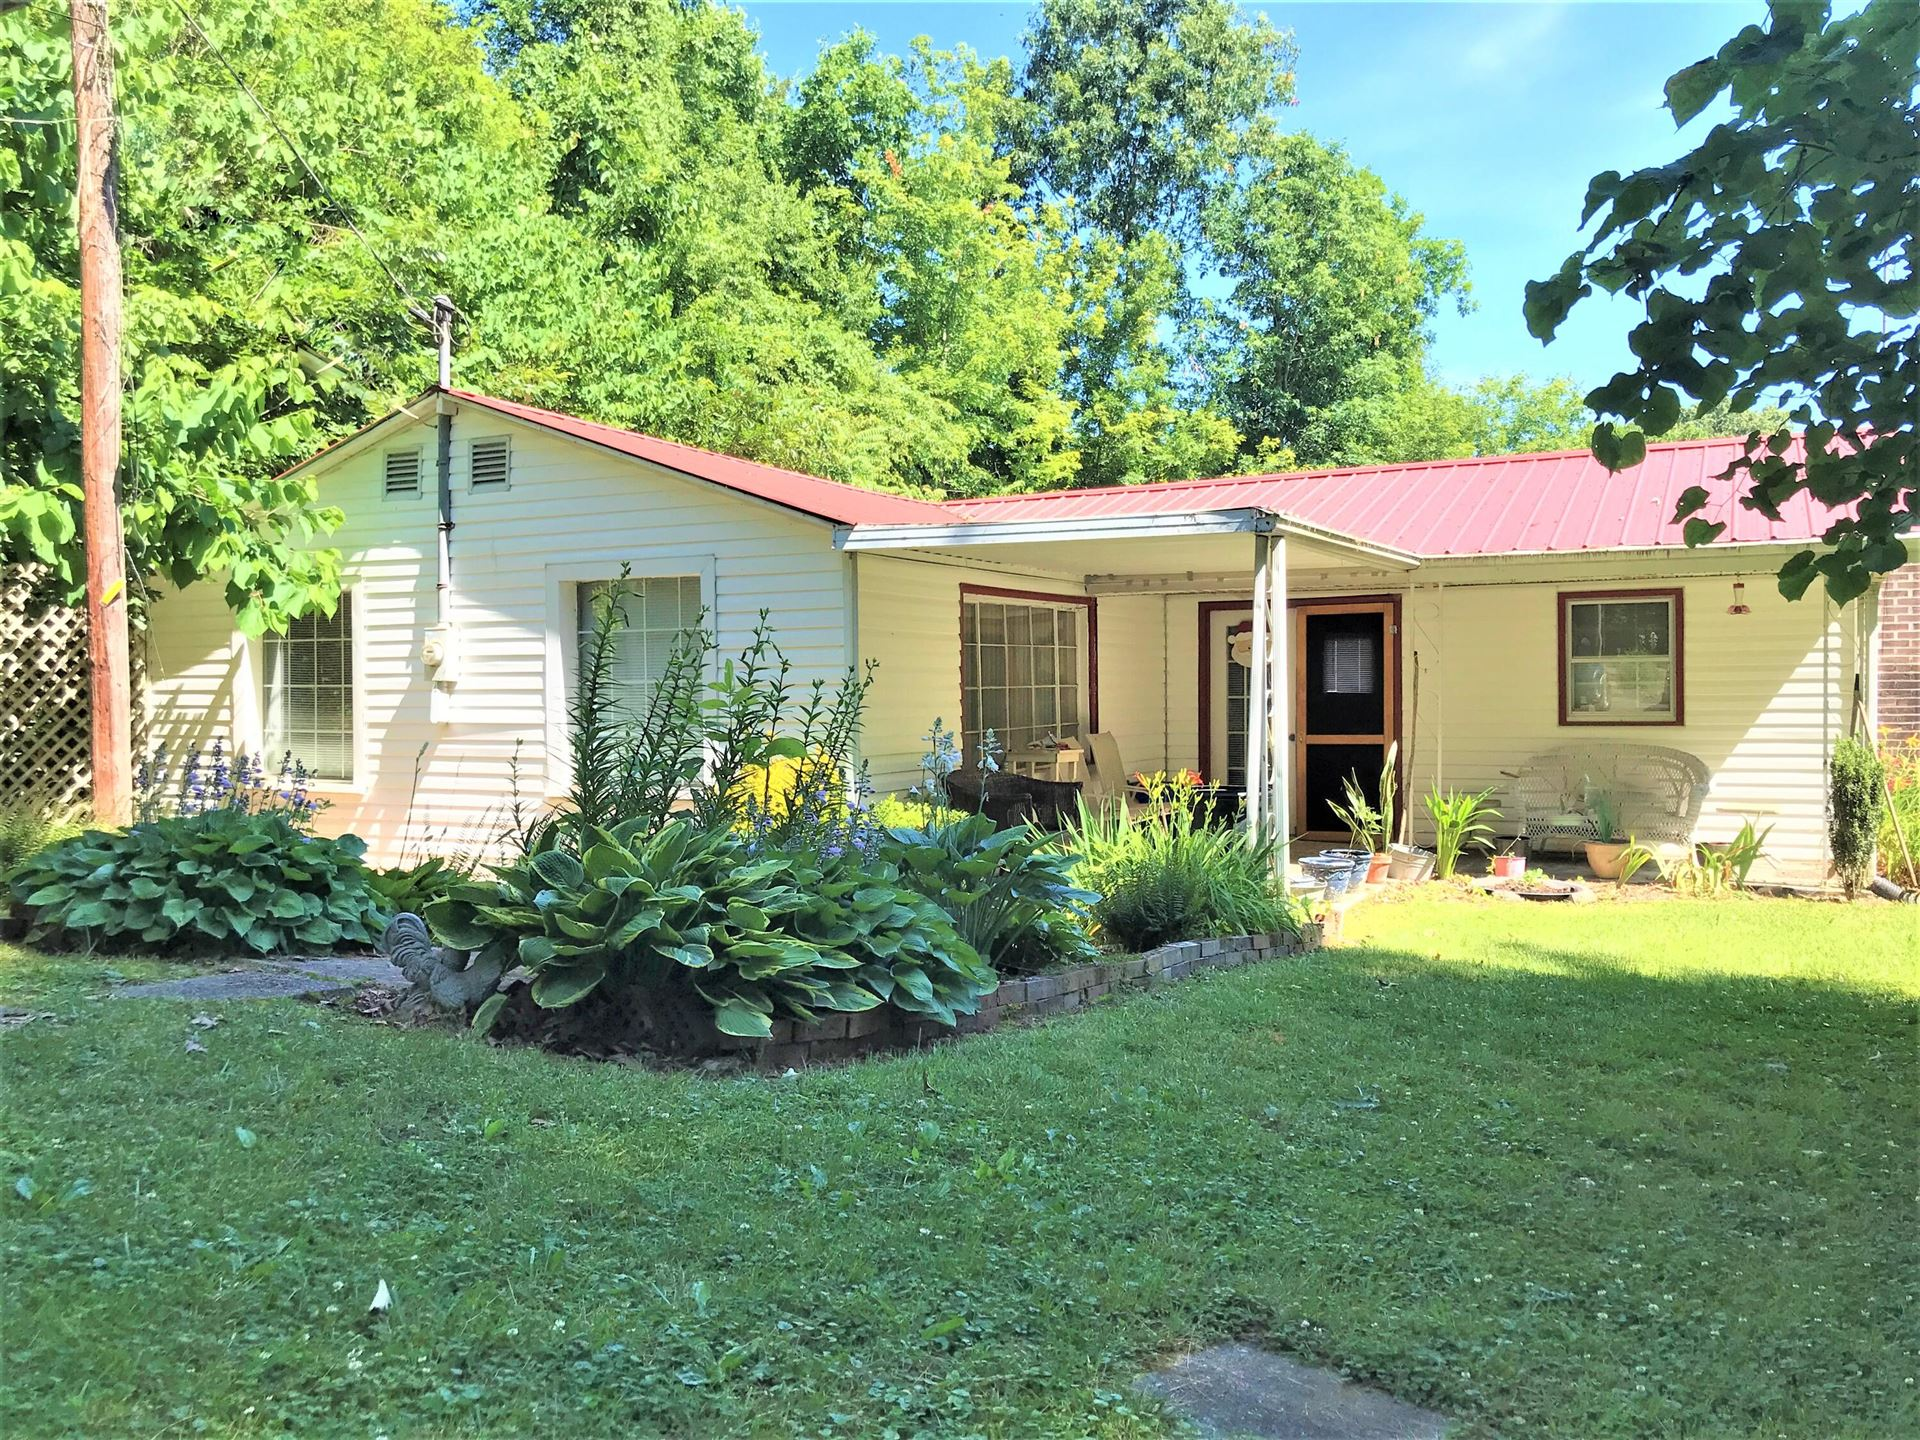 Photo of 2244 Old State Route 34, Limestone, TN 37681 (MLS # 9928366)